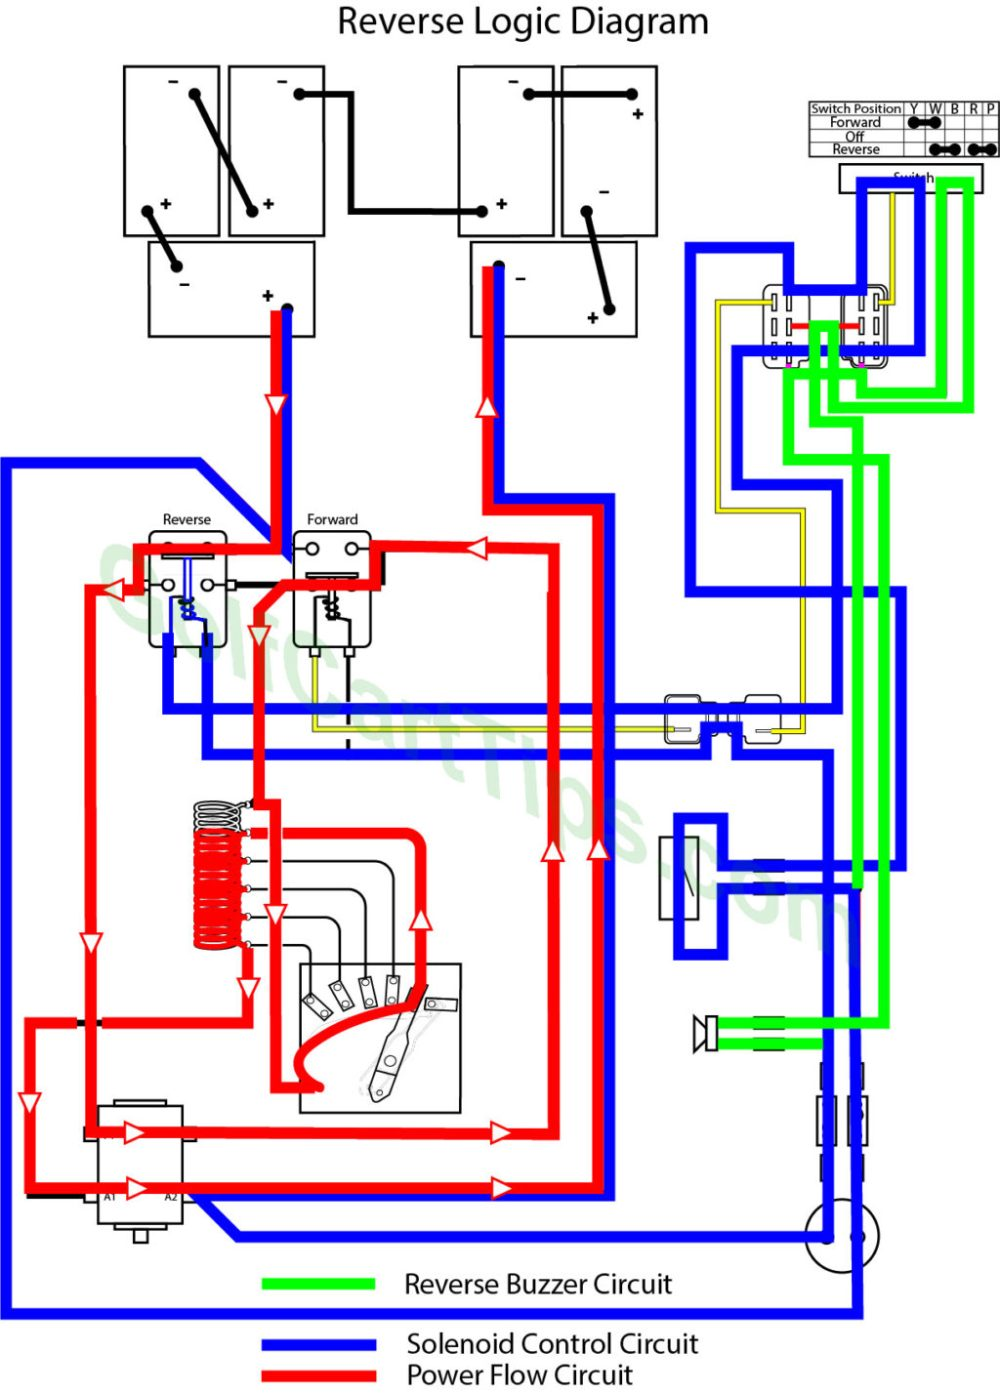 medium resolution of yamaha g1a and g1e wiring troubleshooting diagrams 1979 89 reverse buzzer wiring diagram